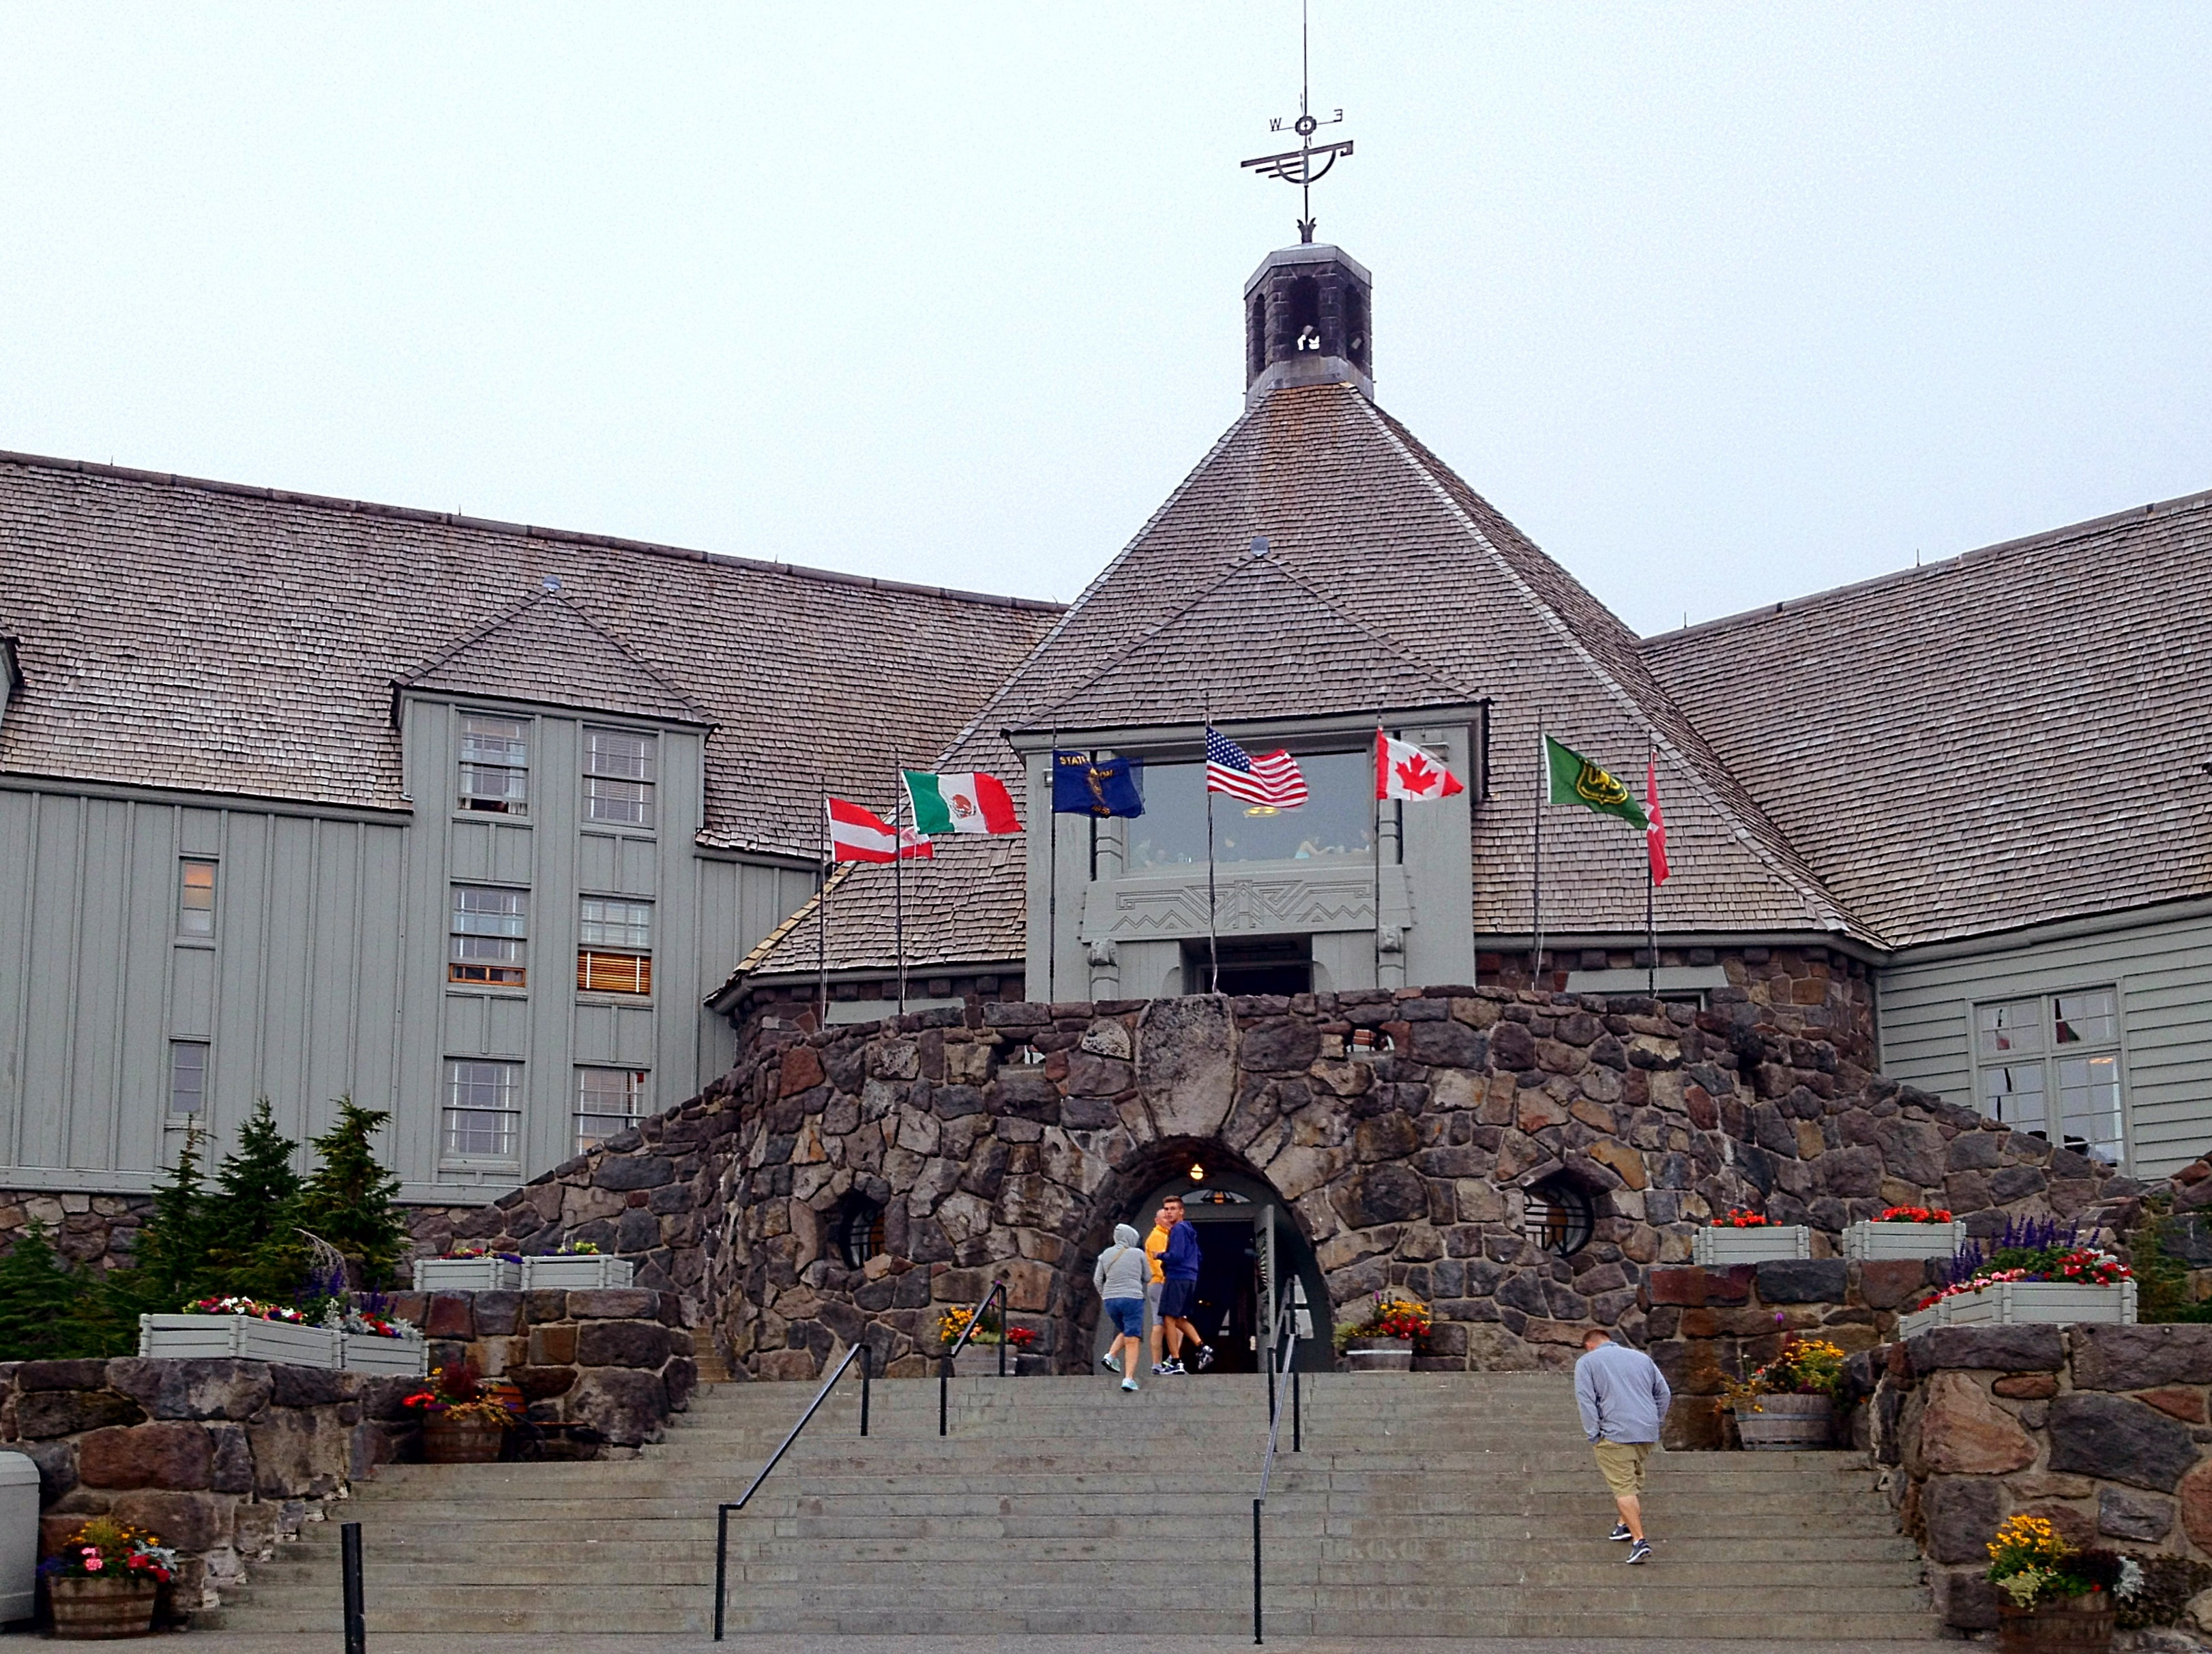 Timberline lodge the quintessential american alpine lodge for The alpine lodge